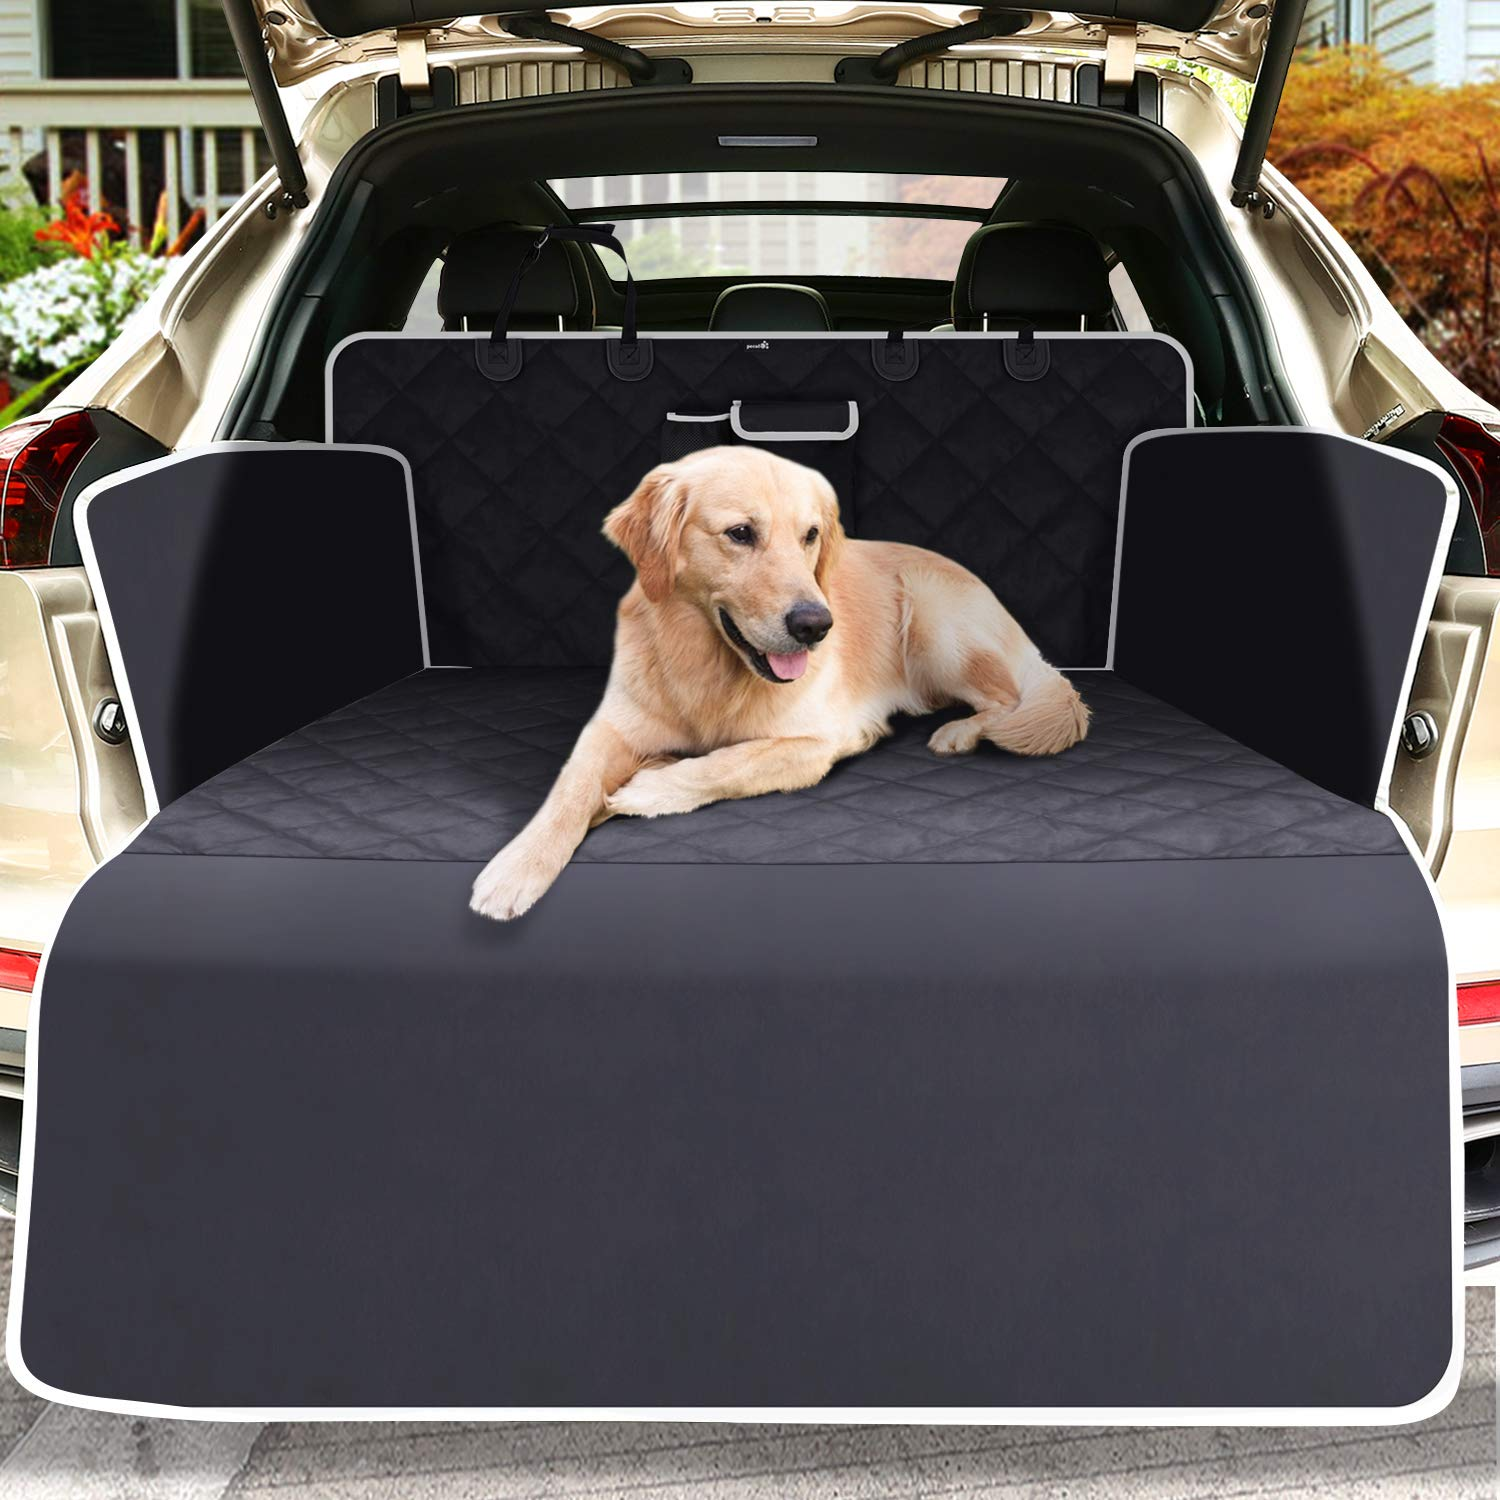 Pecute Car Boot Cover for Dogs, Boot Liner Protector - Waterproof, Washable, Dirt Resistant, Protective Blanket for Cargo Liner, Trunk Travel Blanket for Cars, SUVs, Trucks